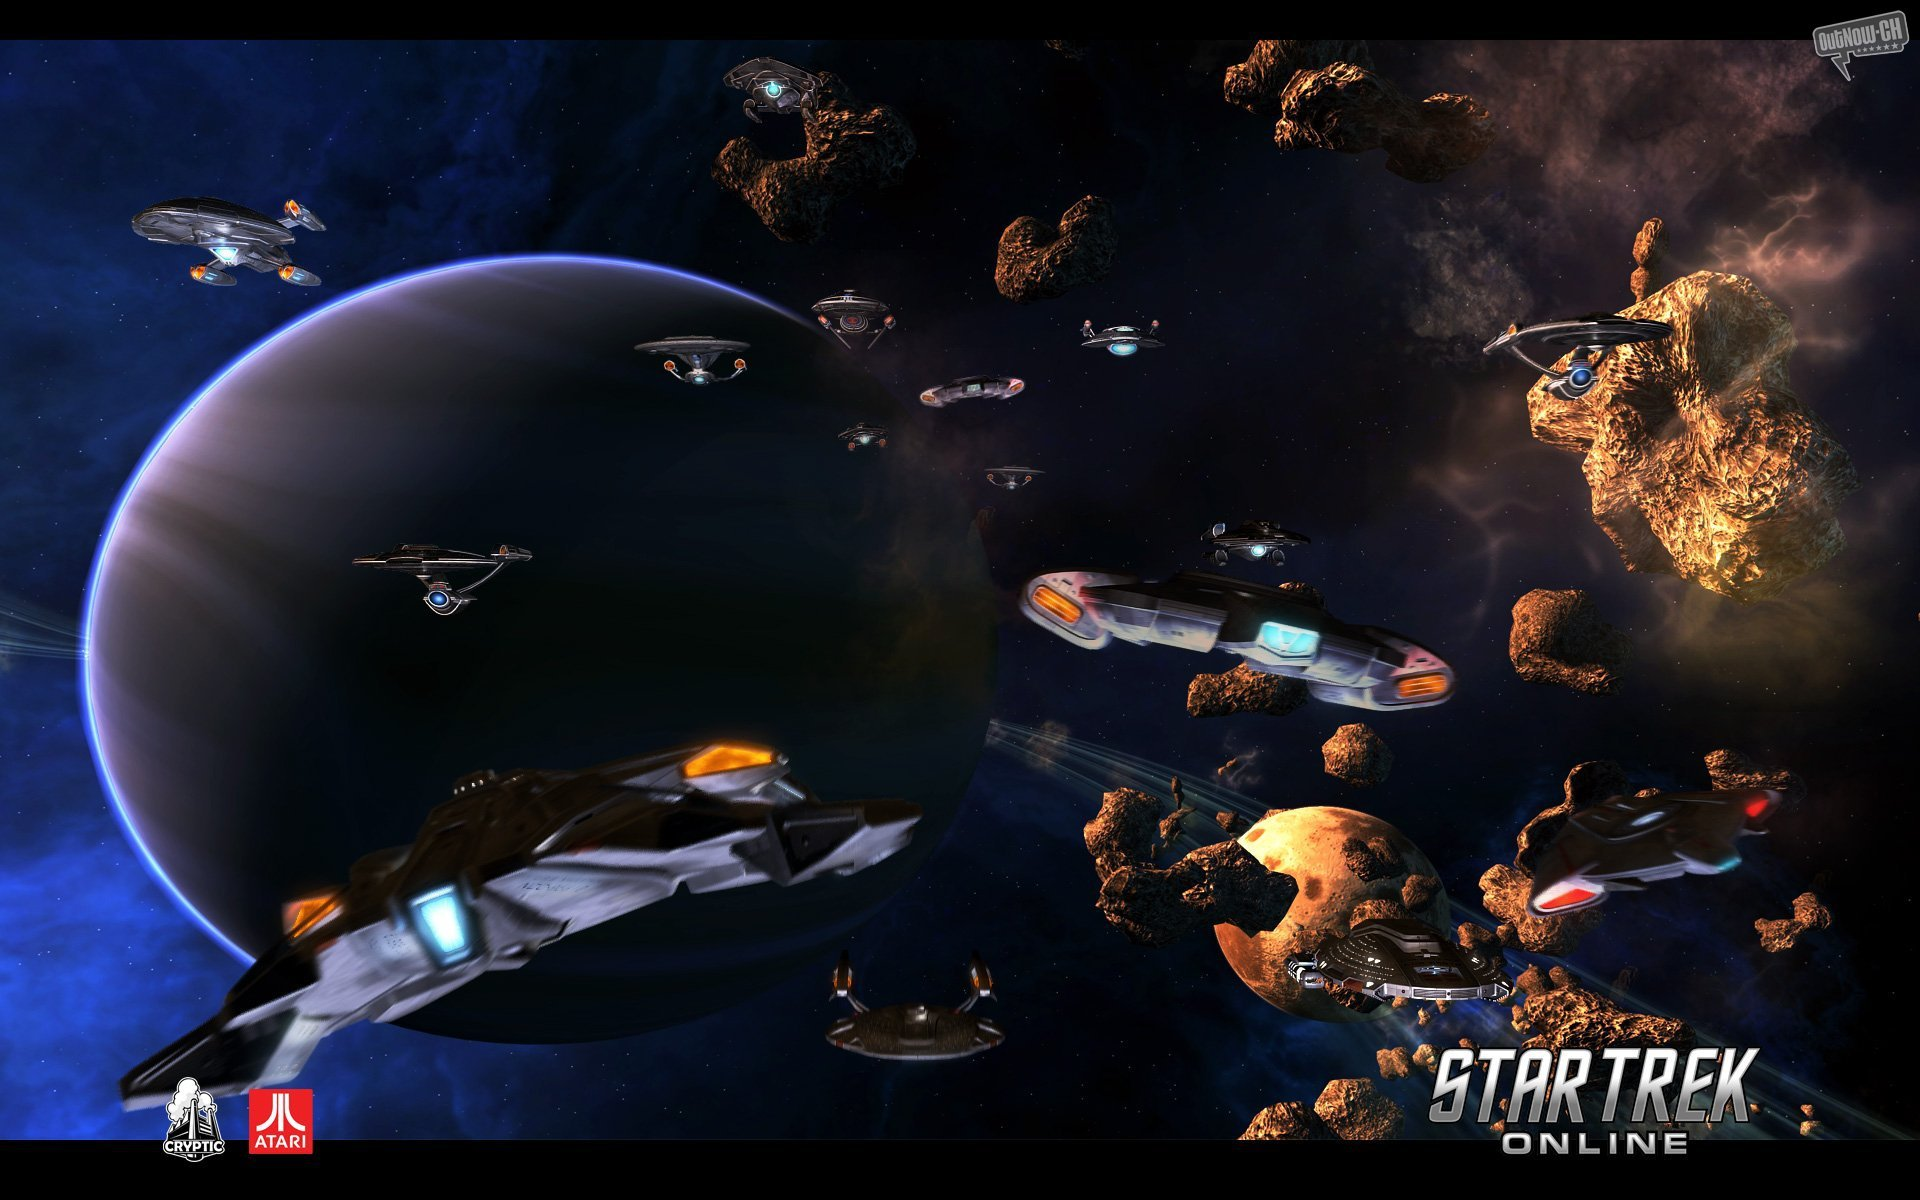 1920x1200 Star Trek Online desktop PC and Mac wallpaper 1920x1200